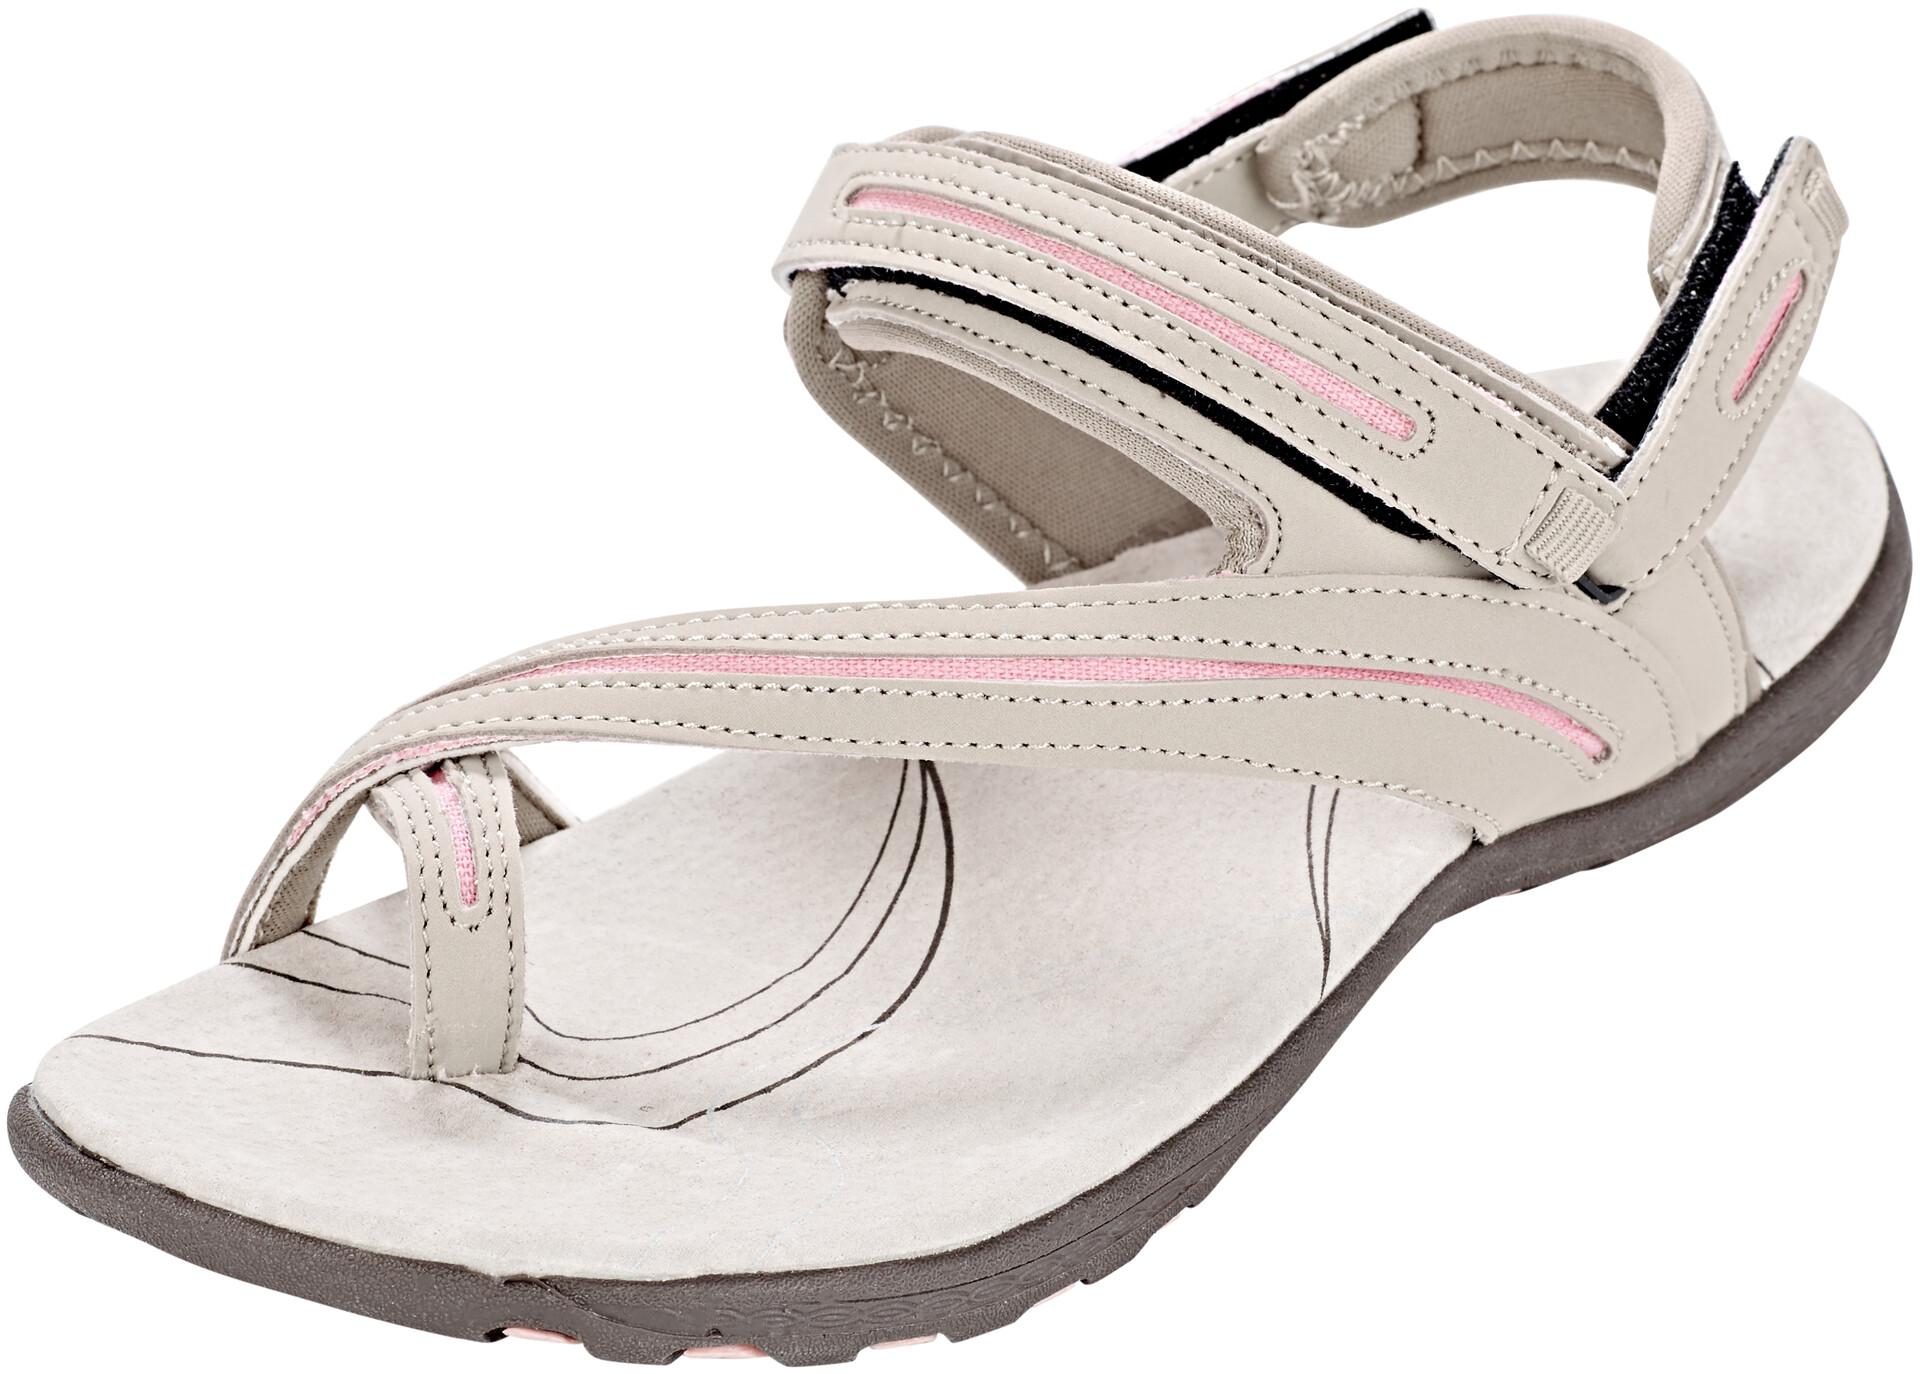 be High Beige Aurora L Colorado Dames Sandalen Campz Outdoor Winkel 7rZgz7n